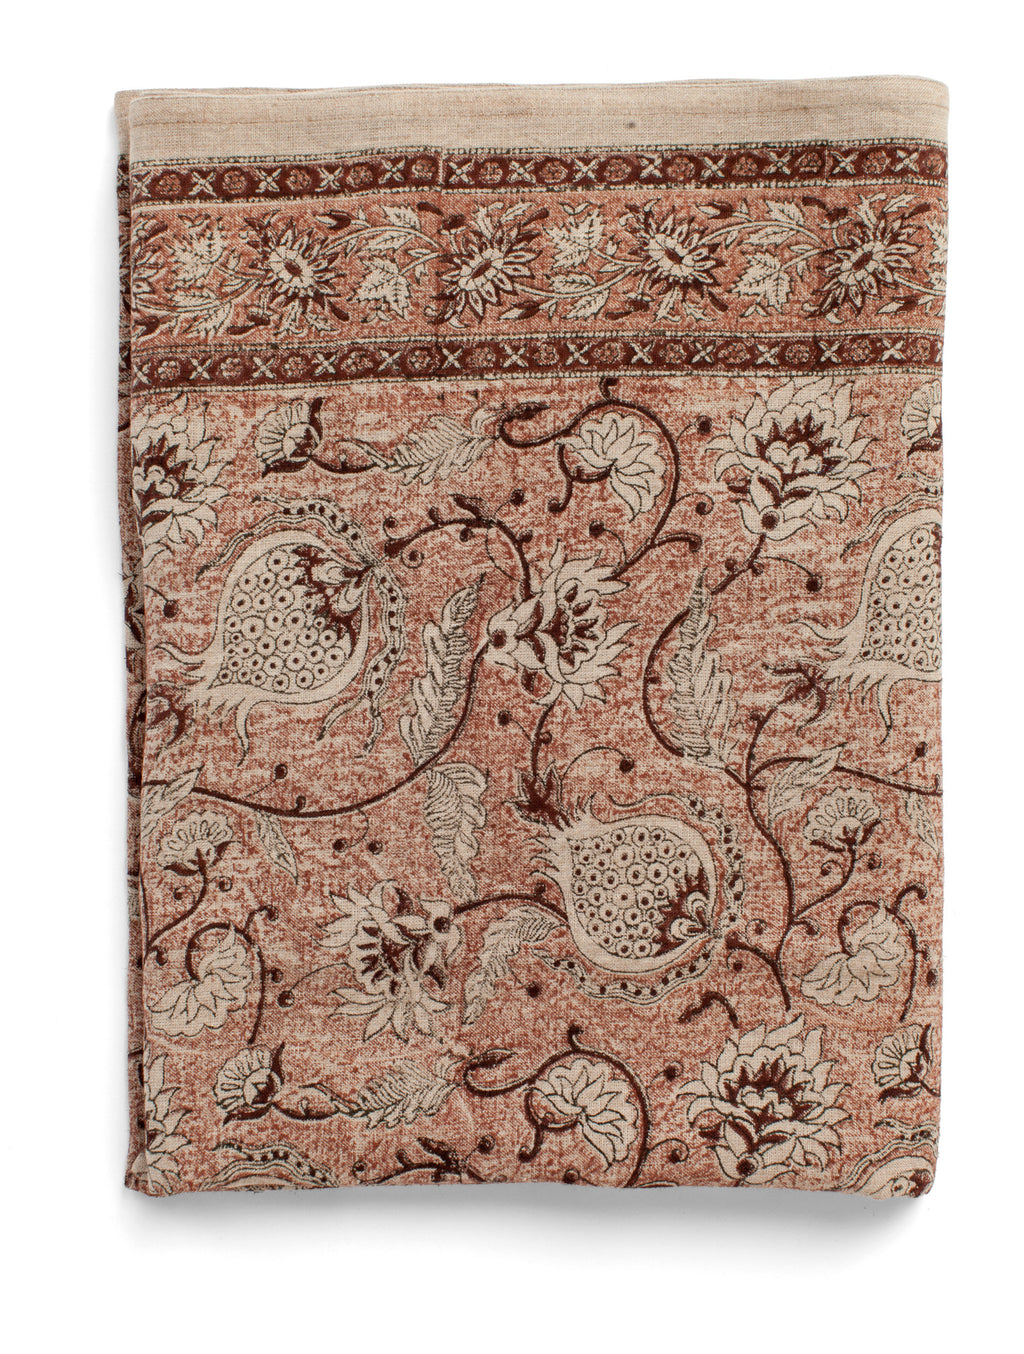 Linen tablecloth with Pomegranate print in Rust